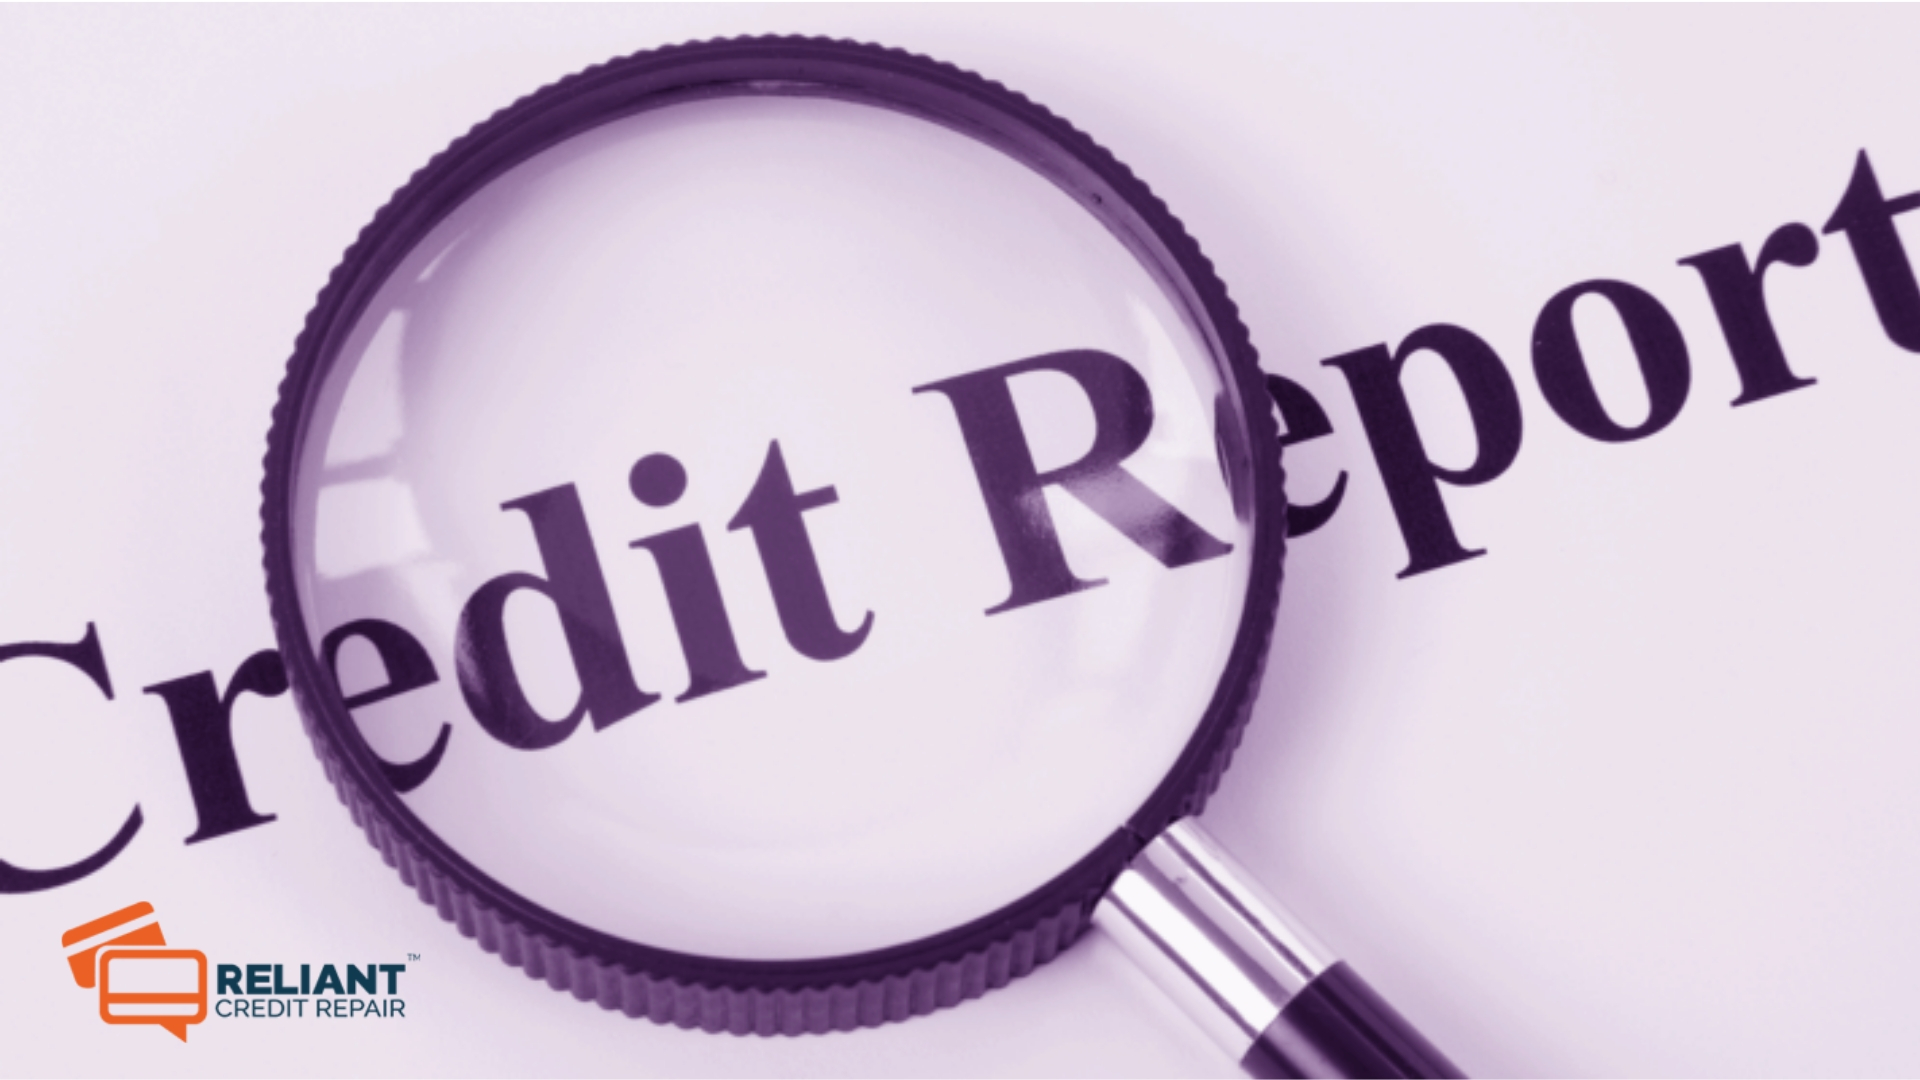 Repairing Your Credit Report